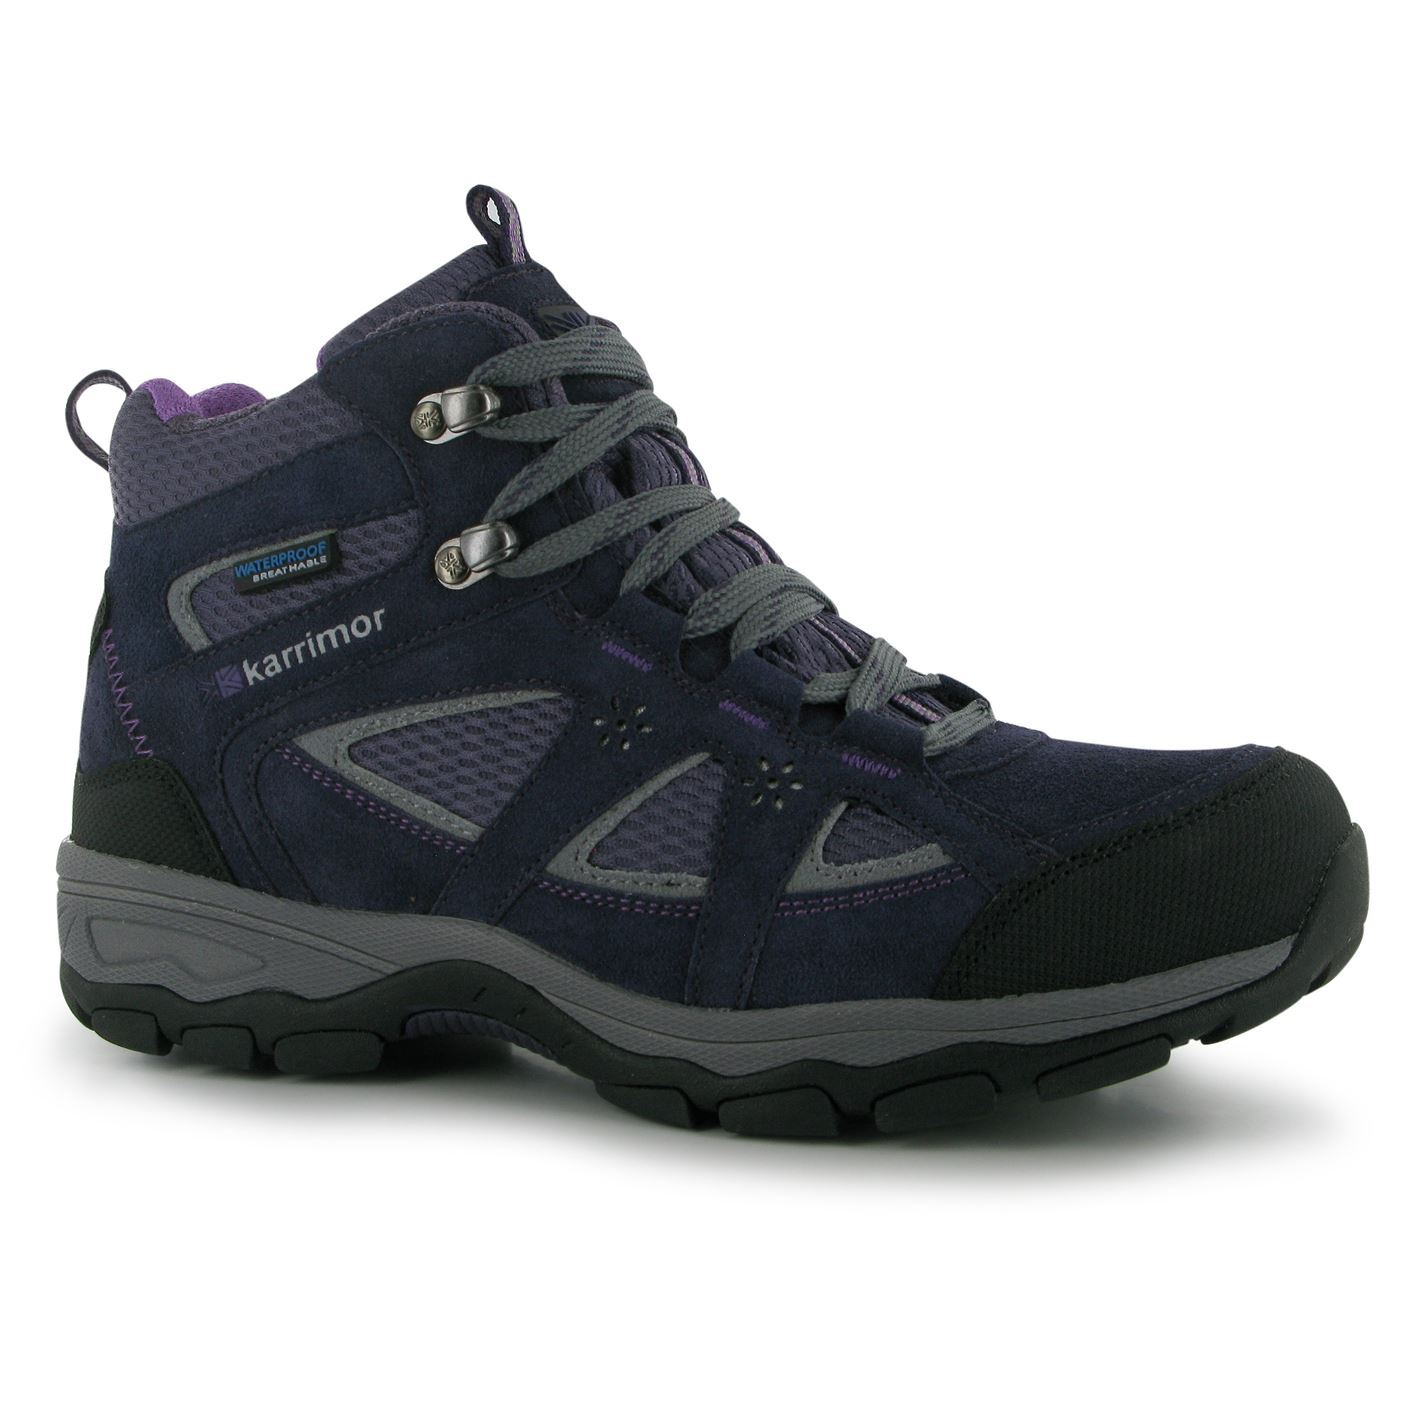 karrimor womens mountain mid top walking boots